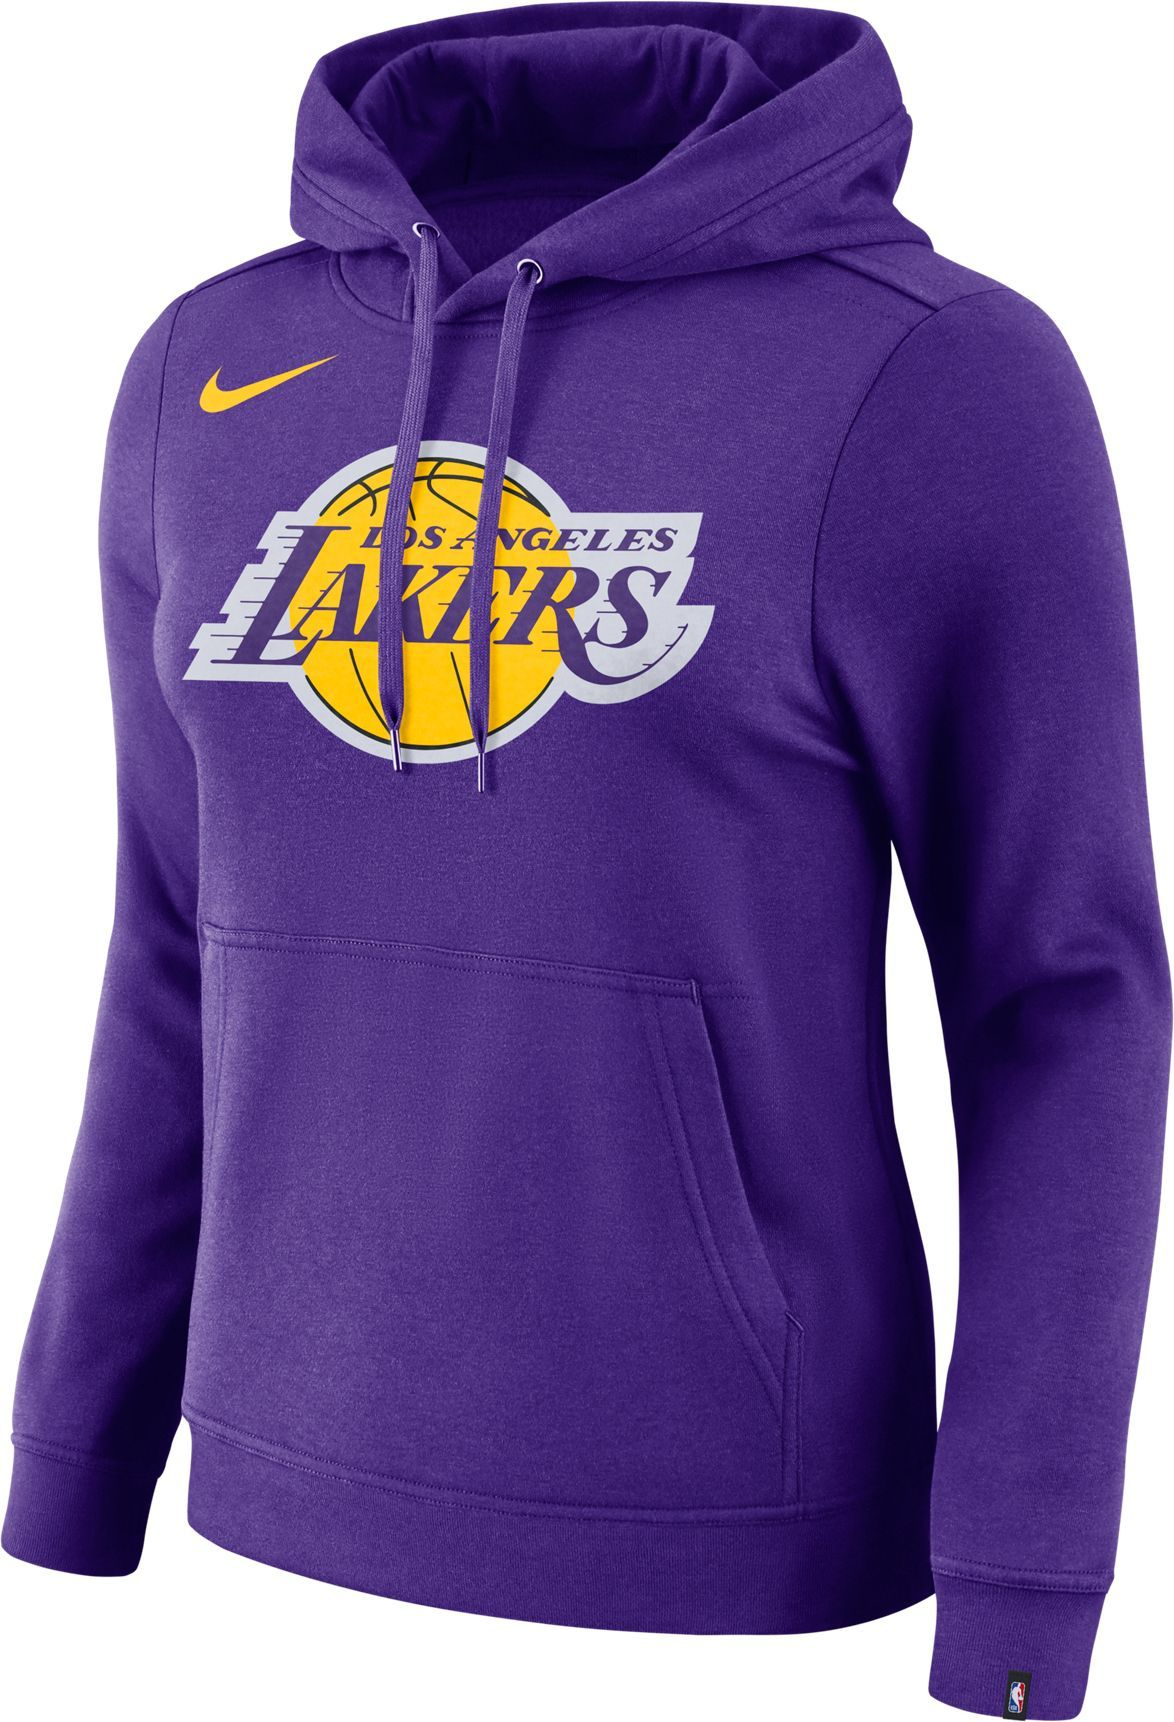 6eb7a03c8eb Nike Women's Los Angeles Lakers Pullover Hoodie in 2019 | Products ...